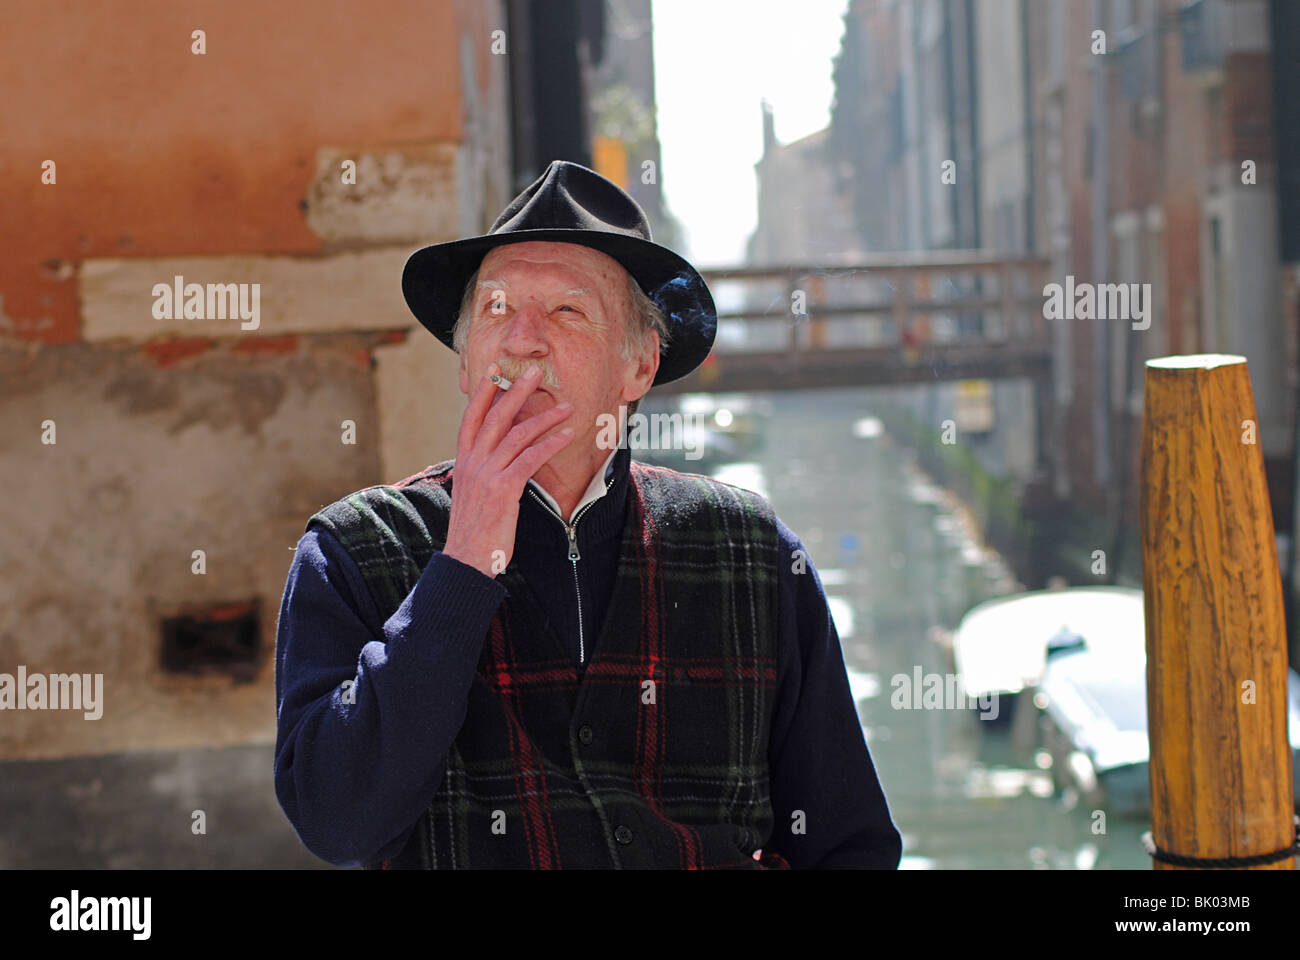 An elderly Italian man smokes a cigarette beside a canal in Venice, Italy - Stock Image